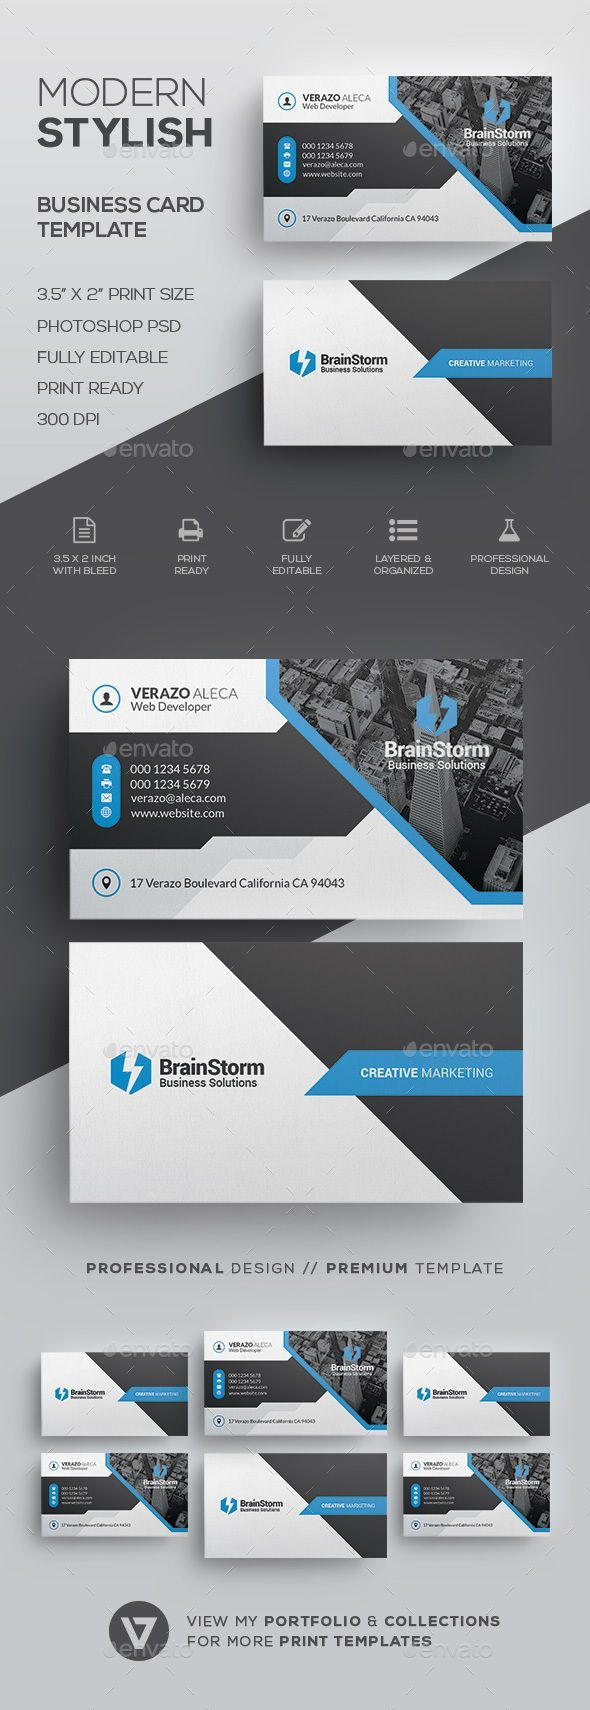 Etiquette tips on business cards corporate business card etiquette tips on business cards corporate business card templates and business cards reheart Images